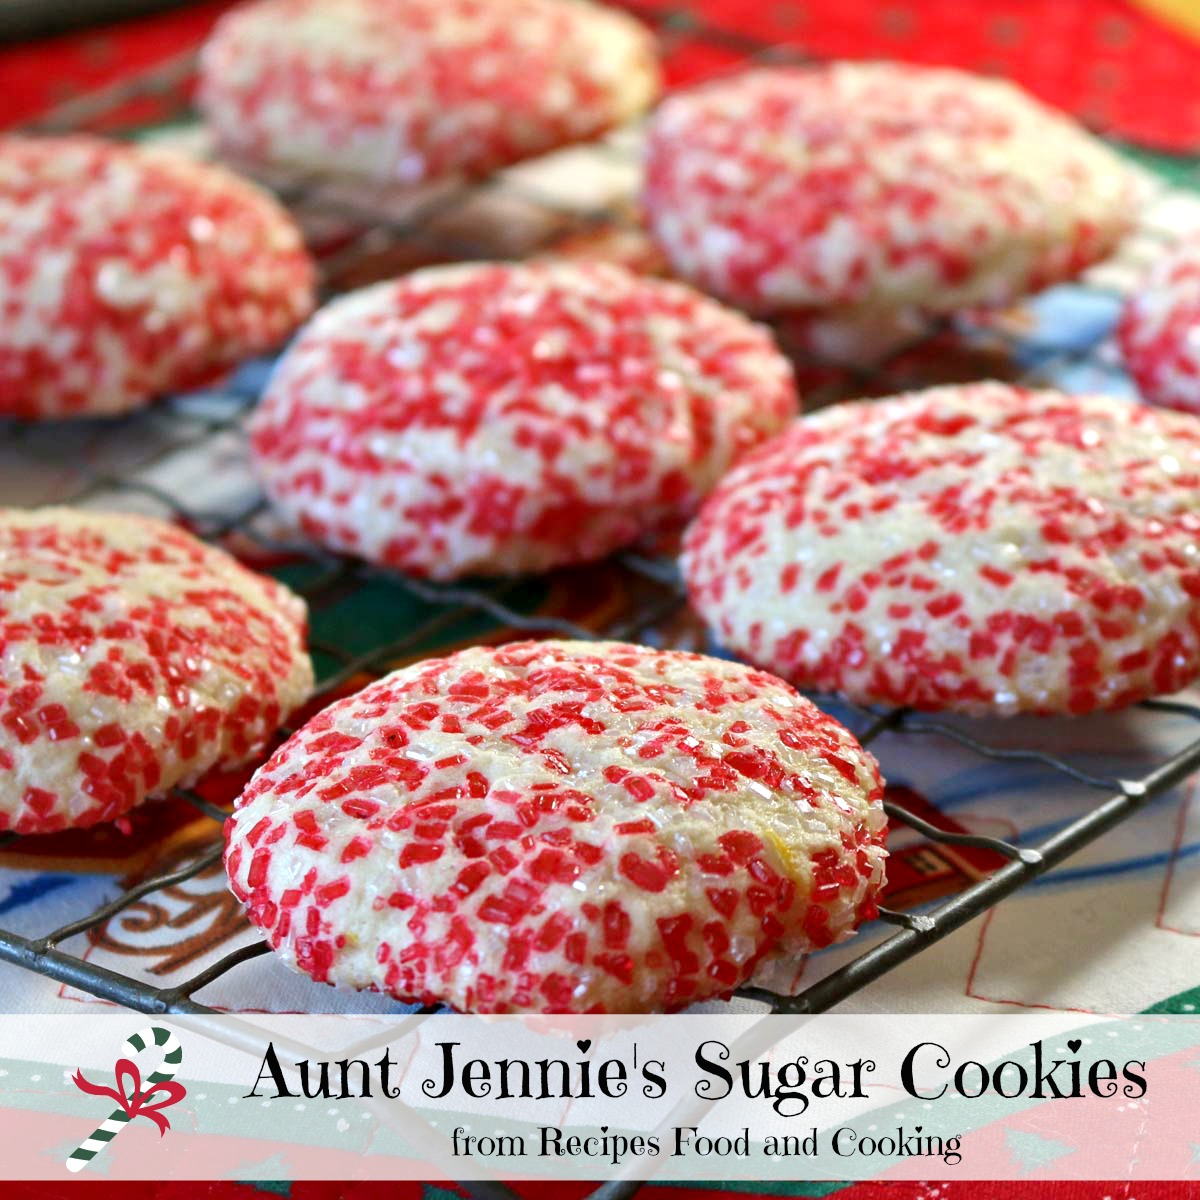 Aunt Jennie's Sugar Cookies